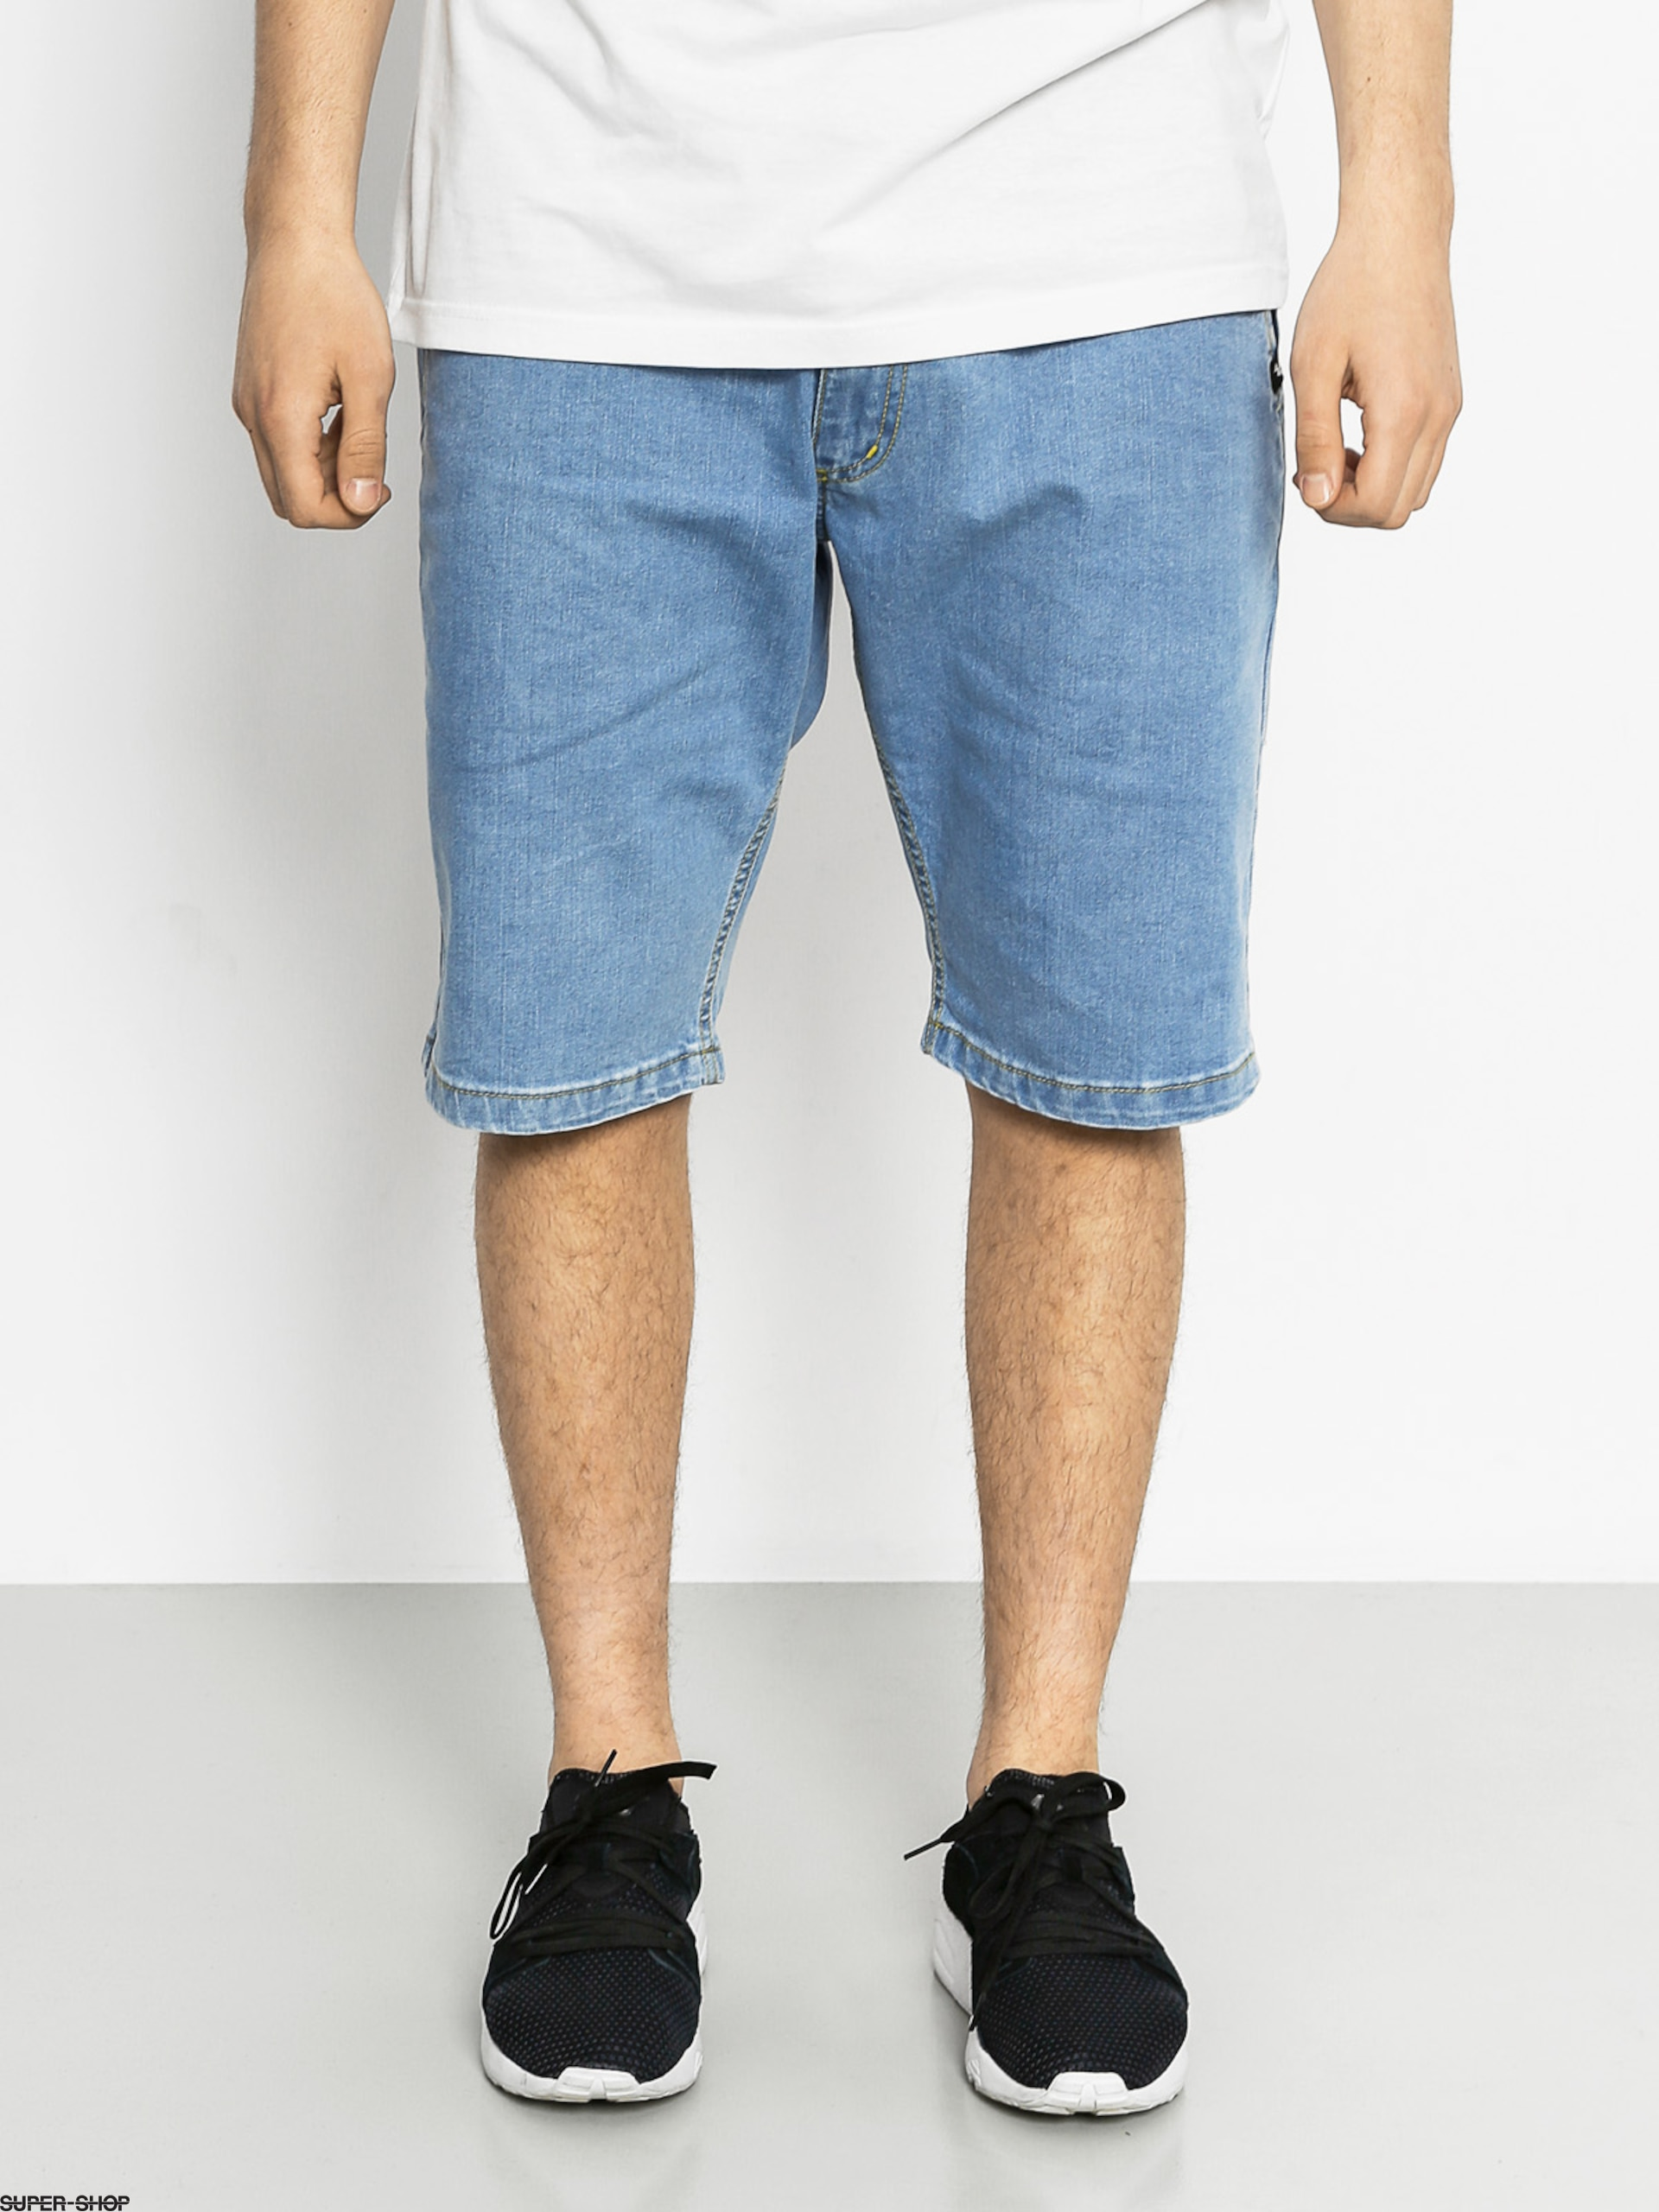 Nervous Shorts Jeans (light blue)